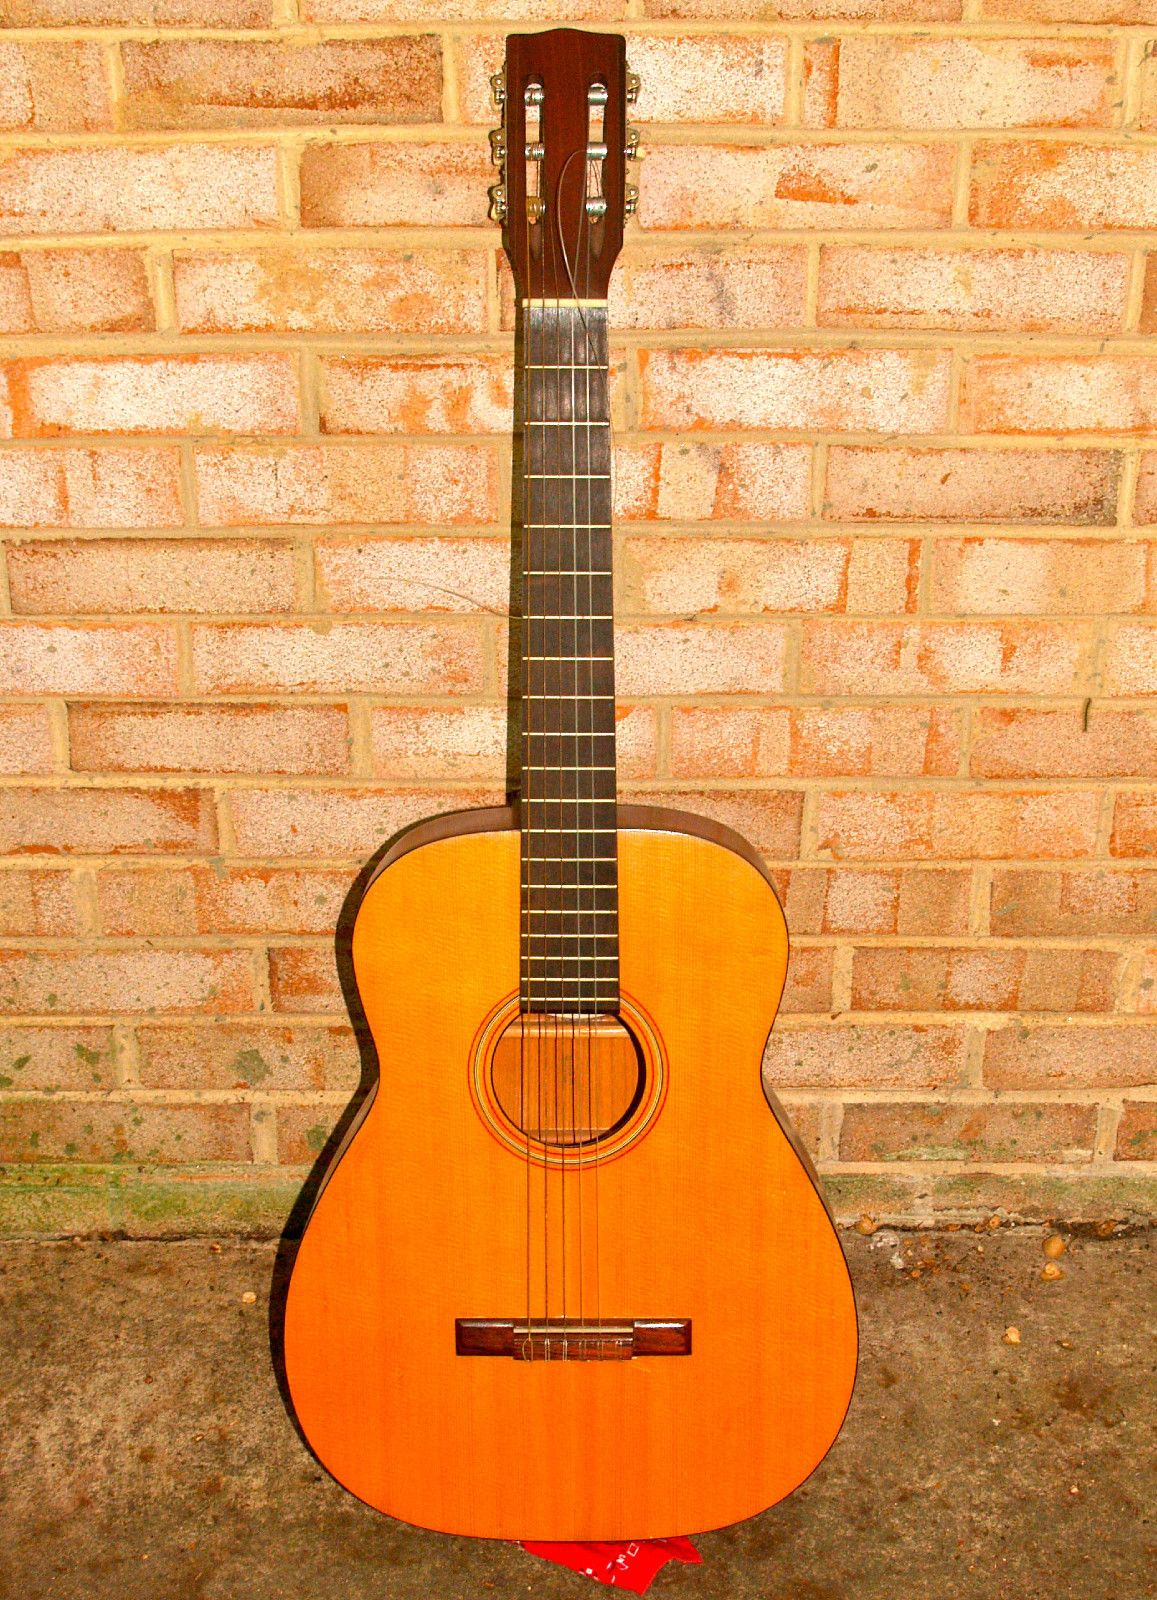 sears silvertone model 319 acoustic guitar from 1960s